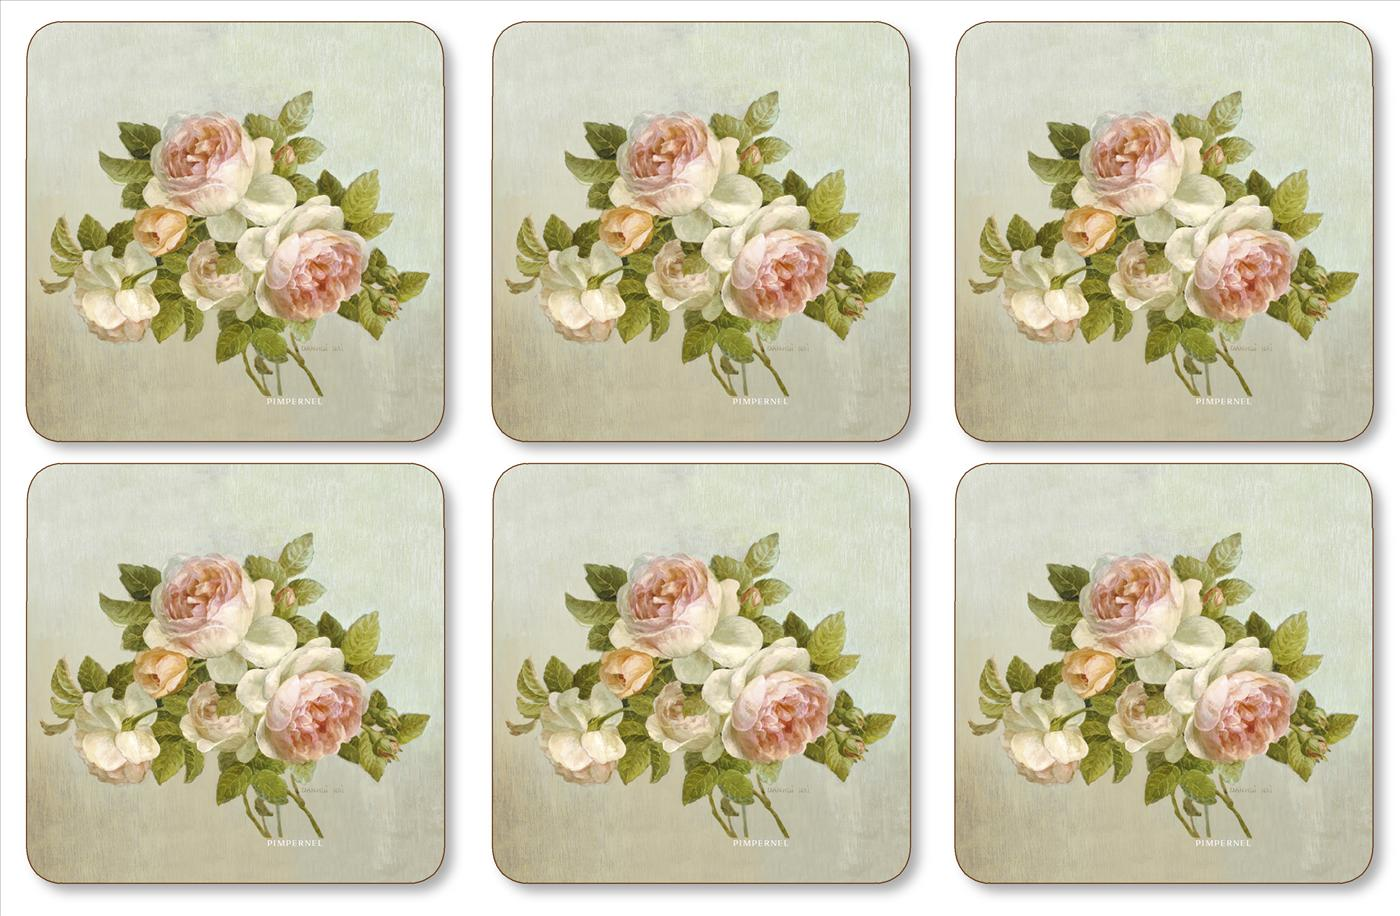 Pimpernel Antique Roses Coasters Set of 6 image number 0